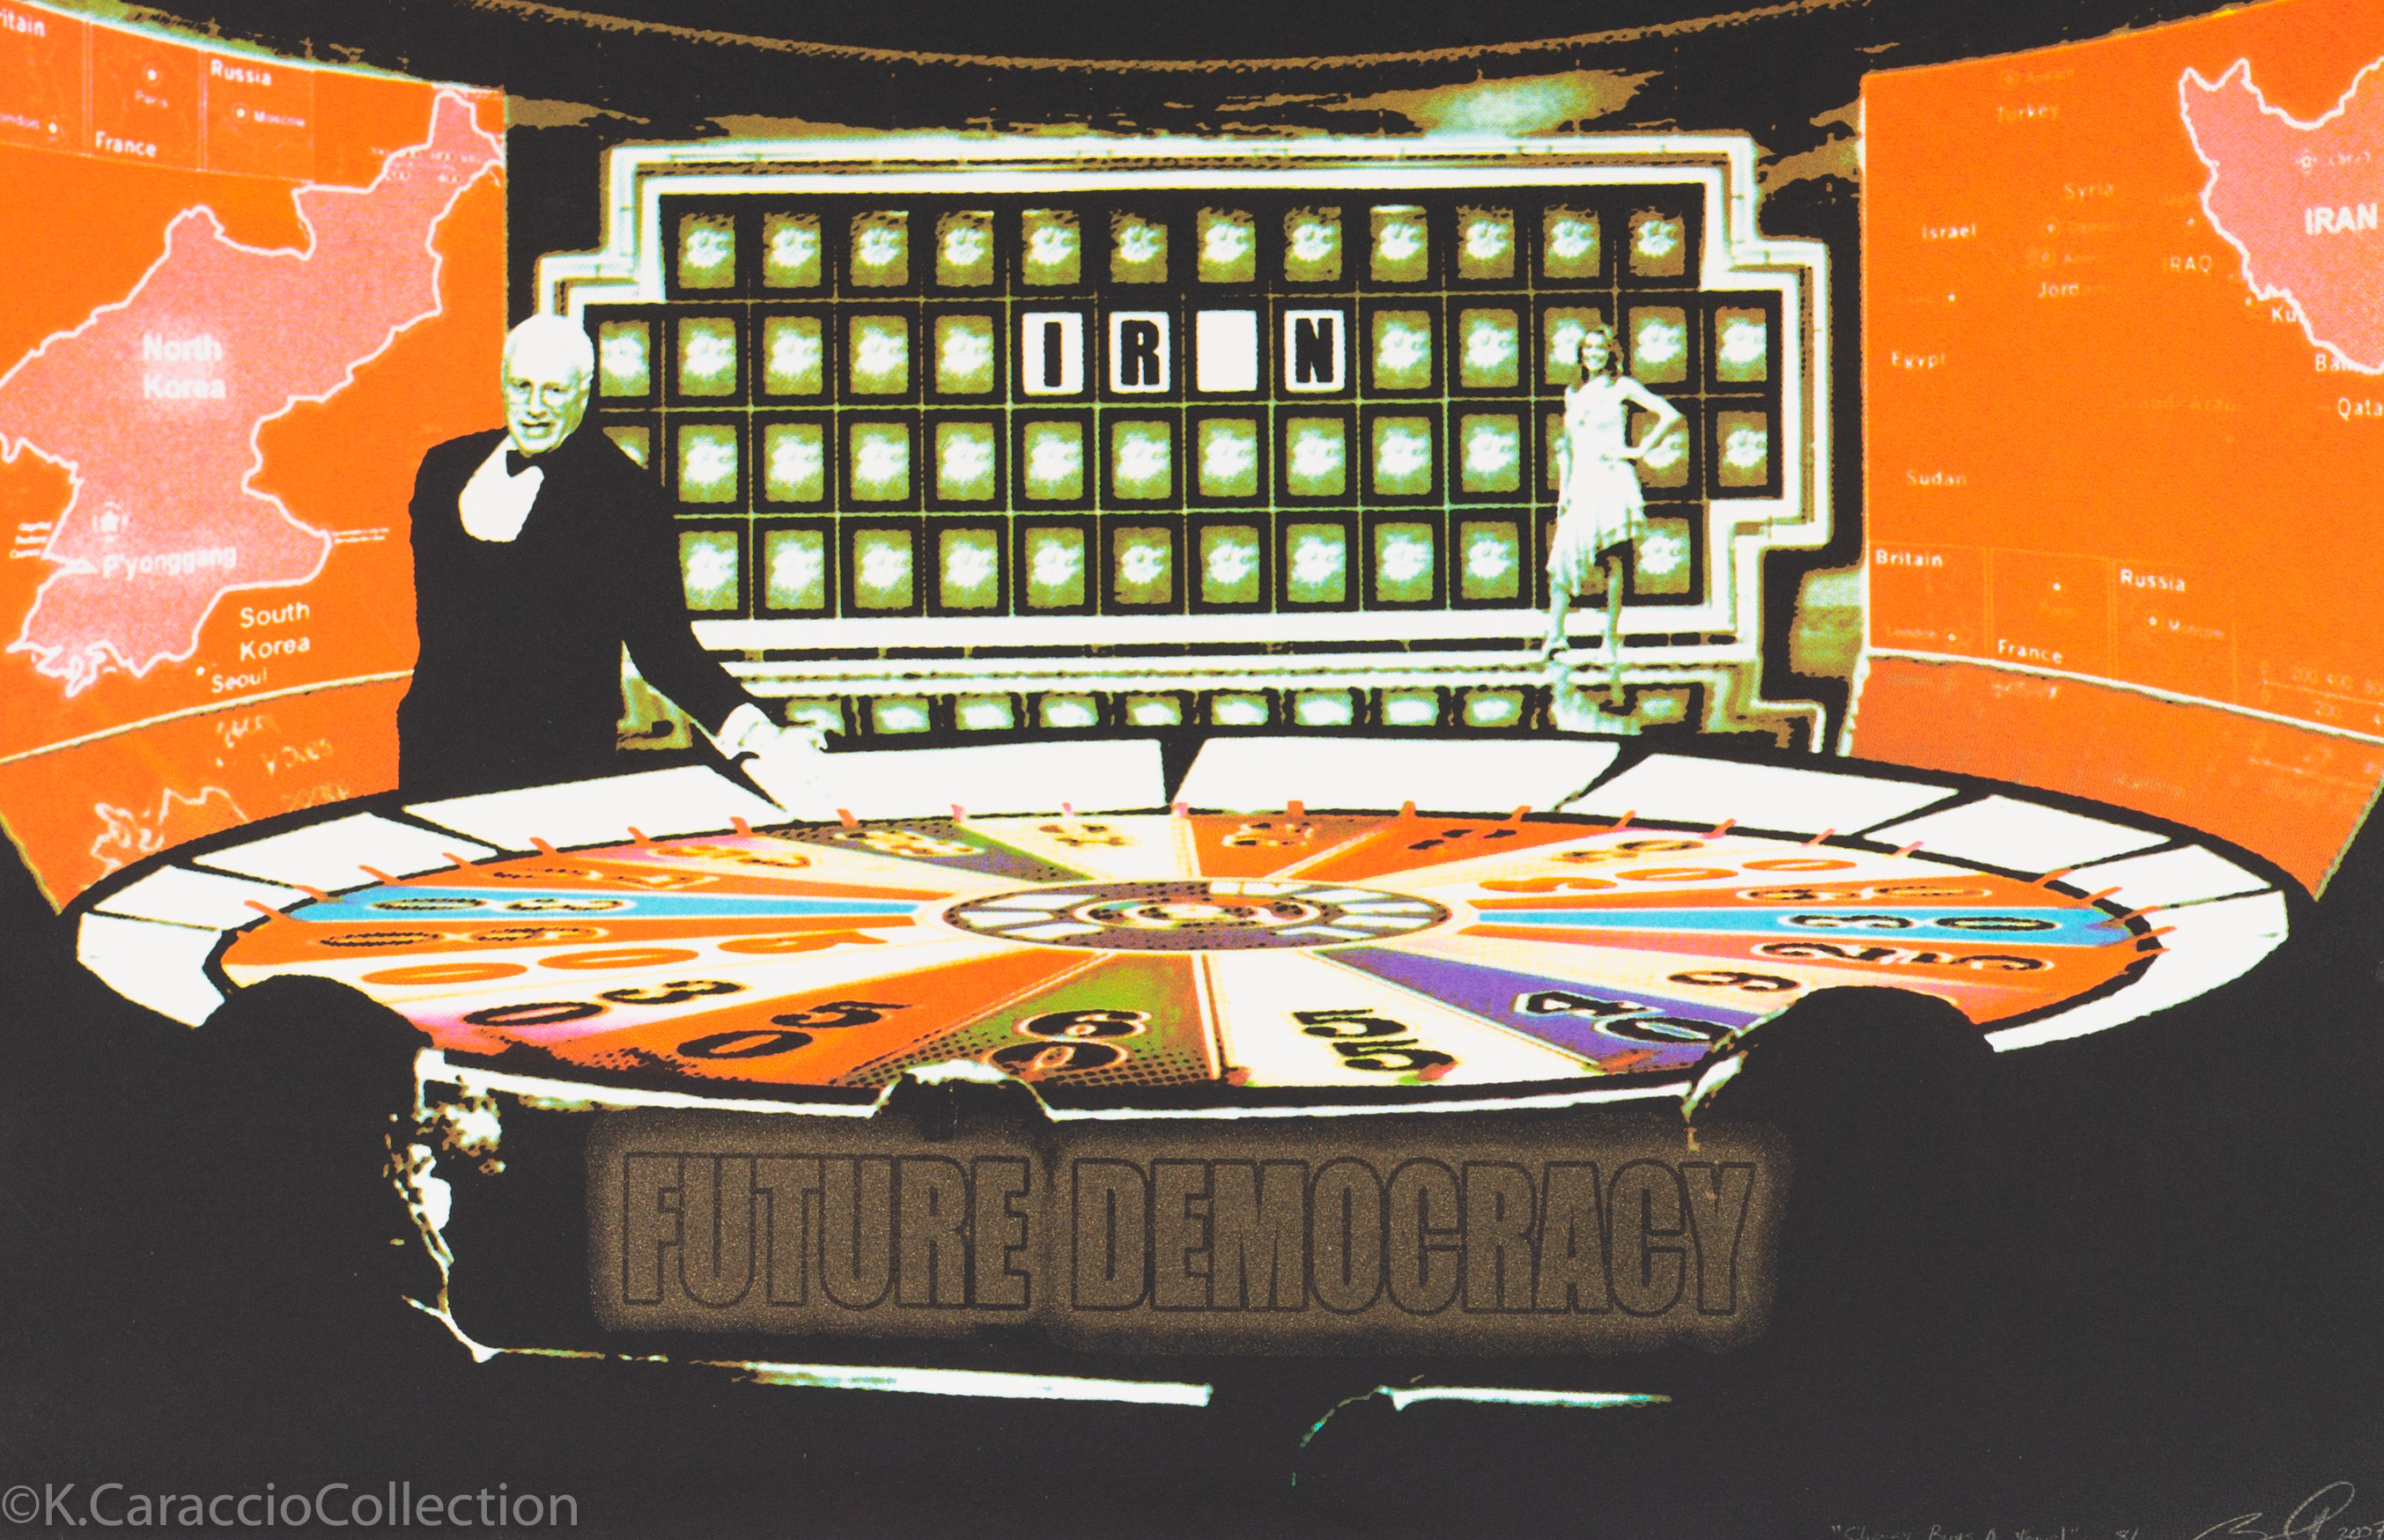 Cheney Buys a Vowel, 2007